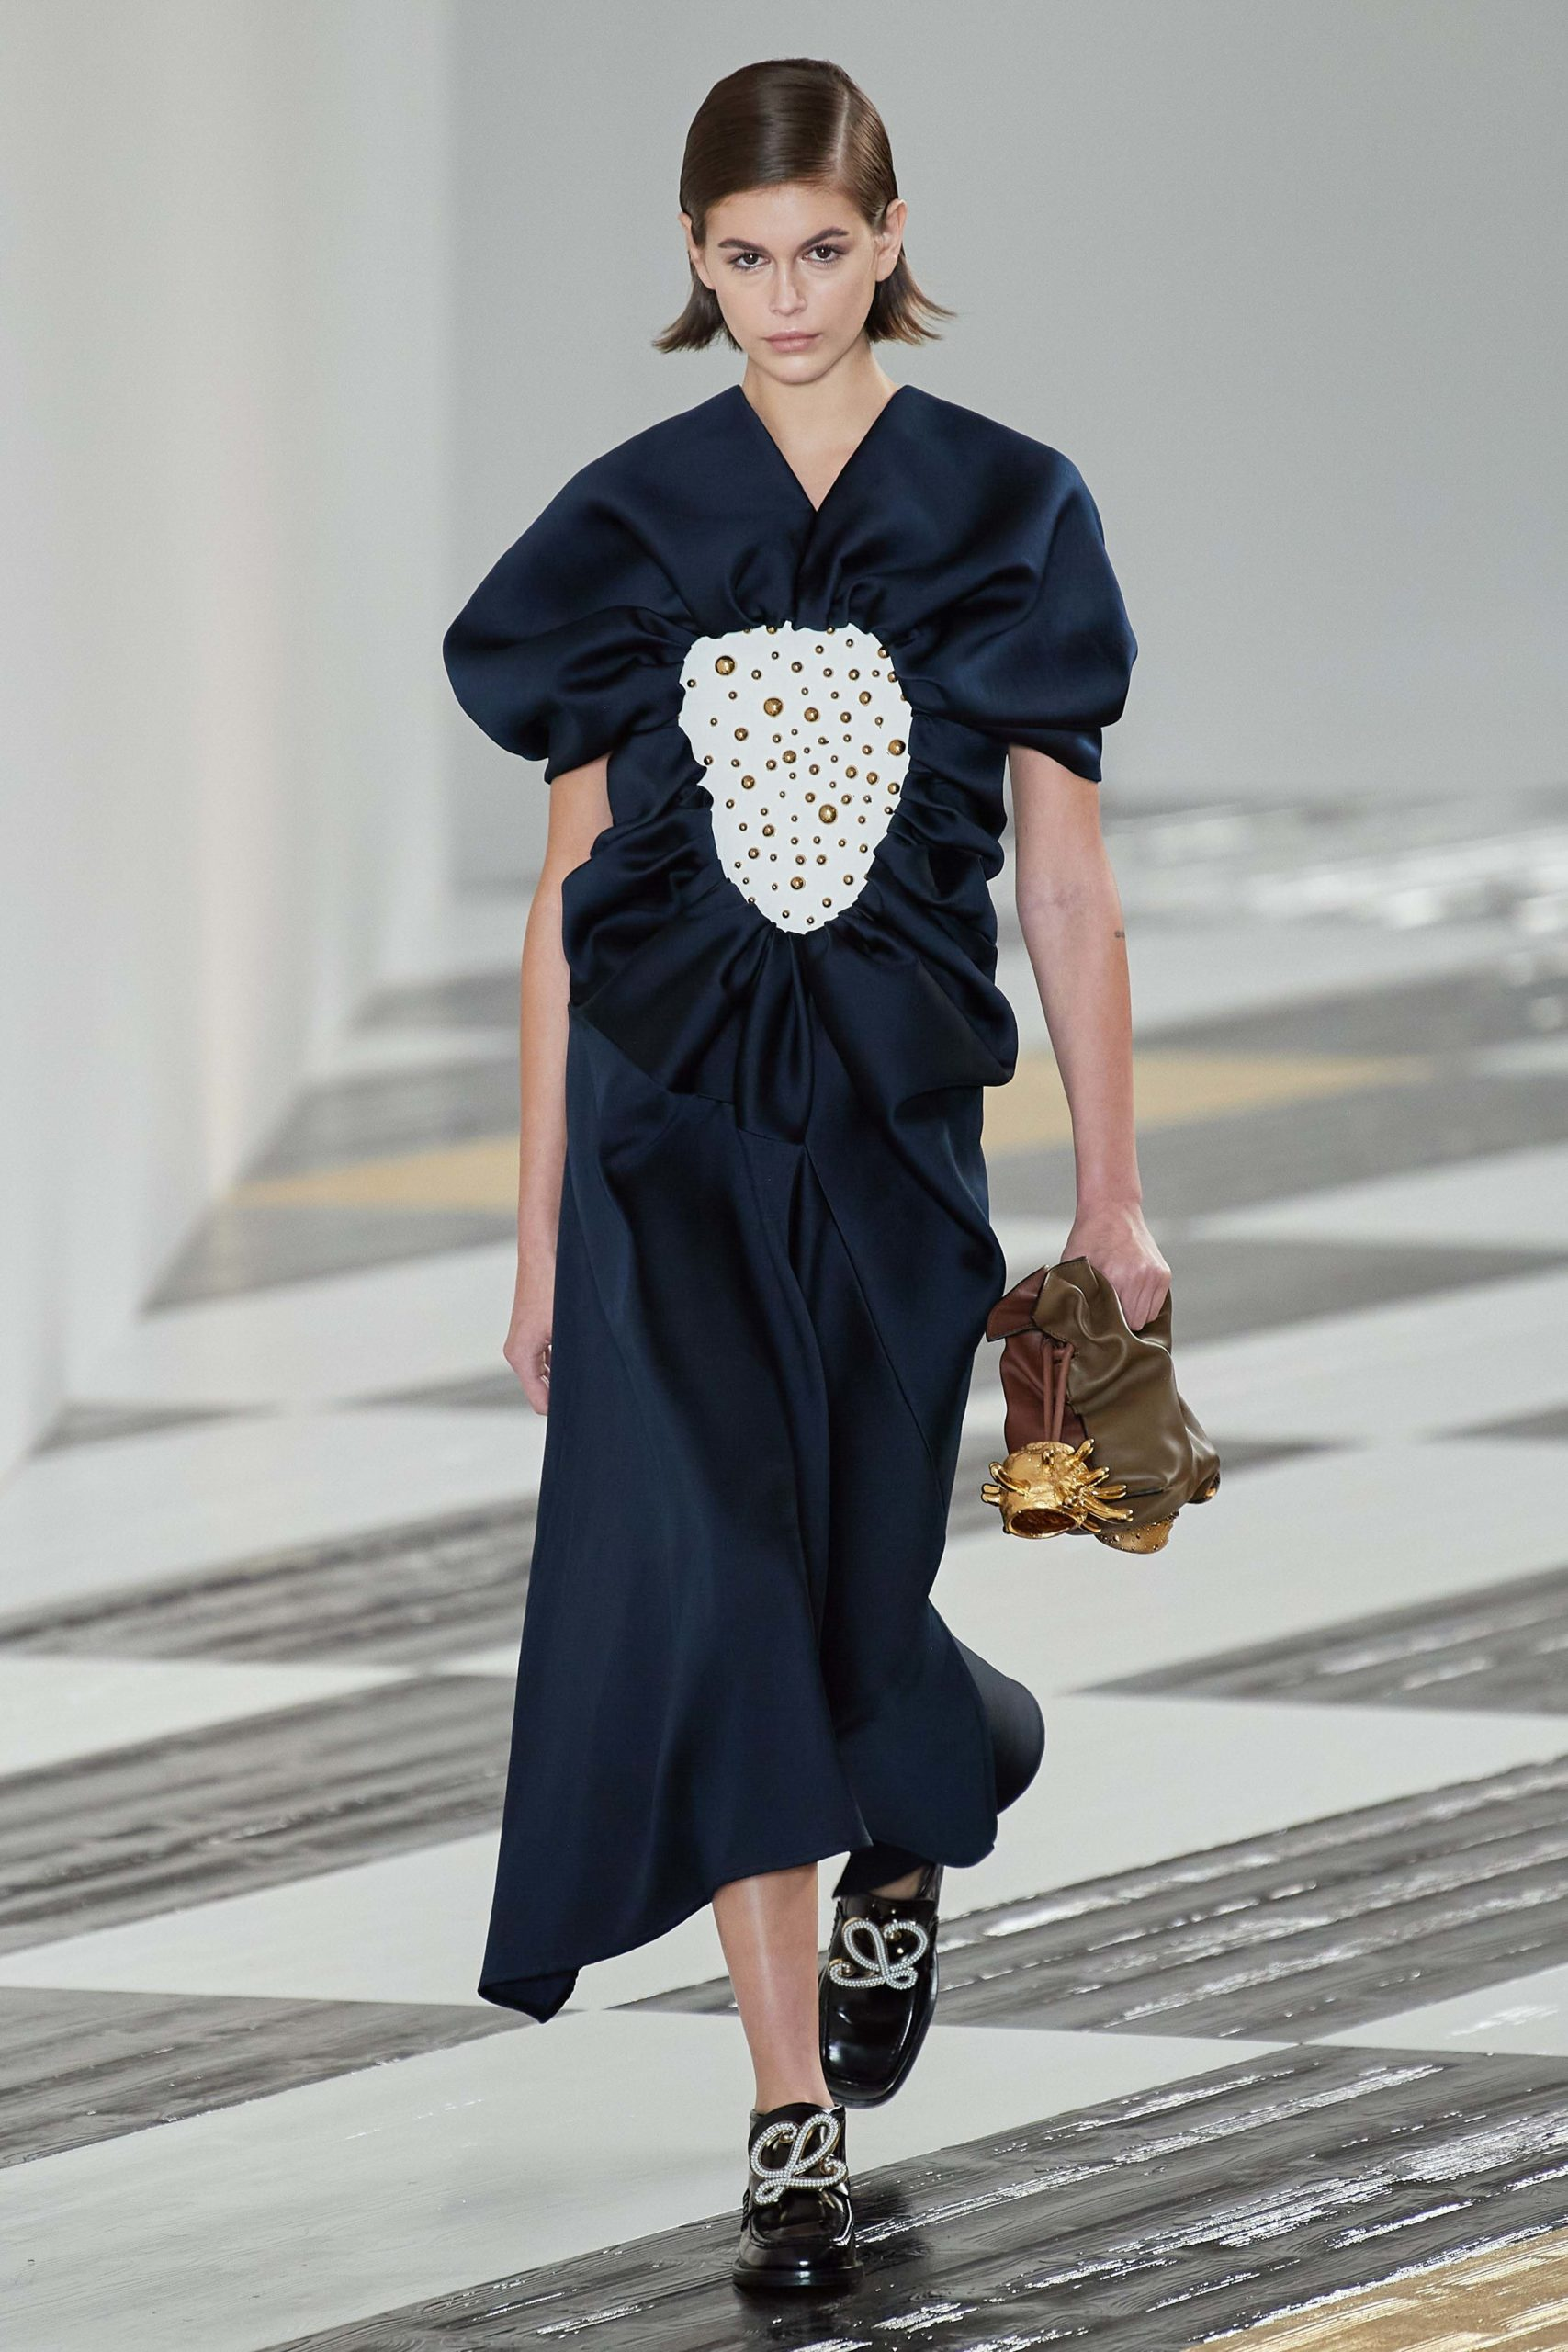 Loewe Fall 2020 trends runway coverage Ready To Wear Vogue dress 2